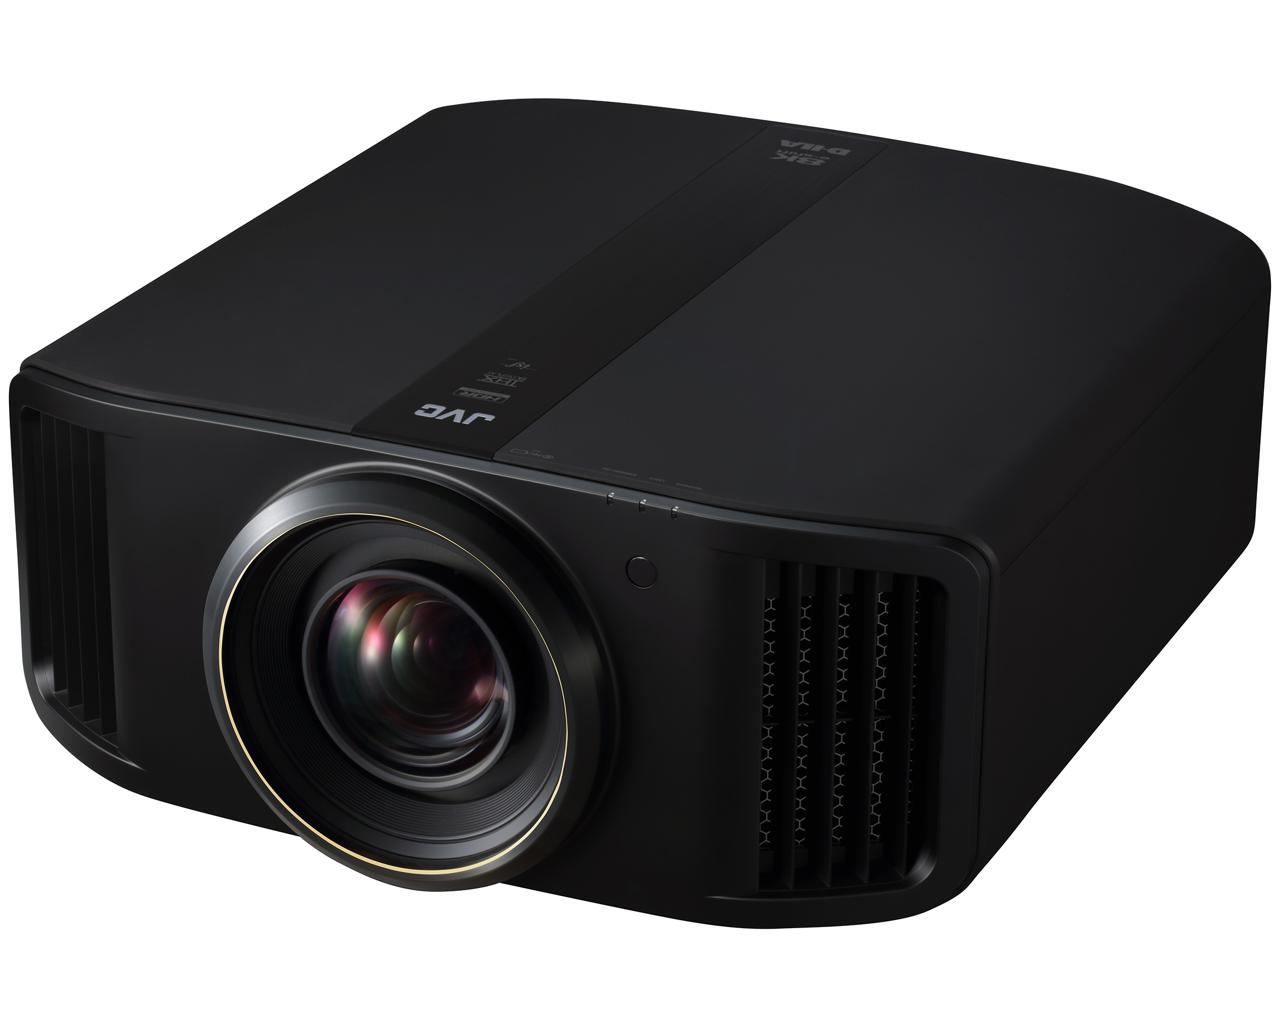 JVC DLA-RS3000 First Look Review-4K Projector